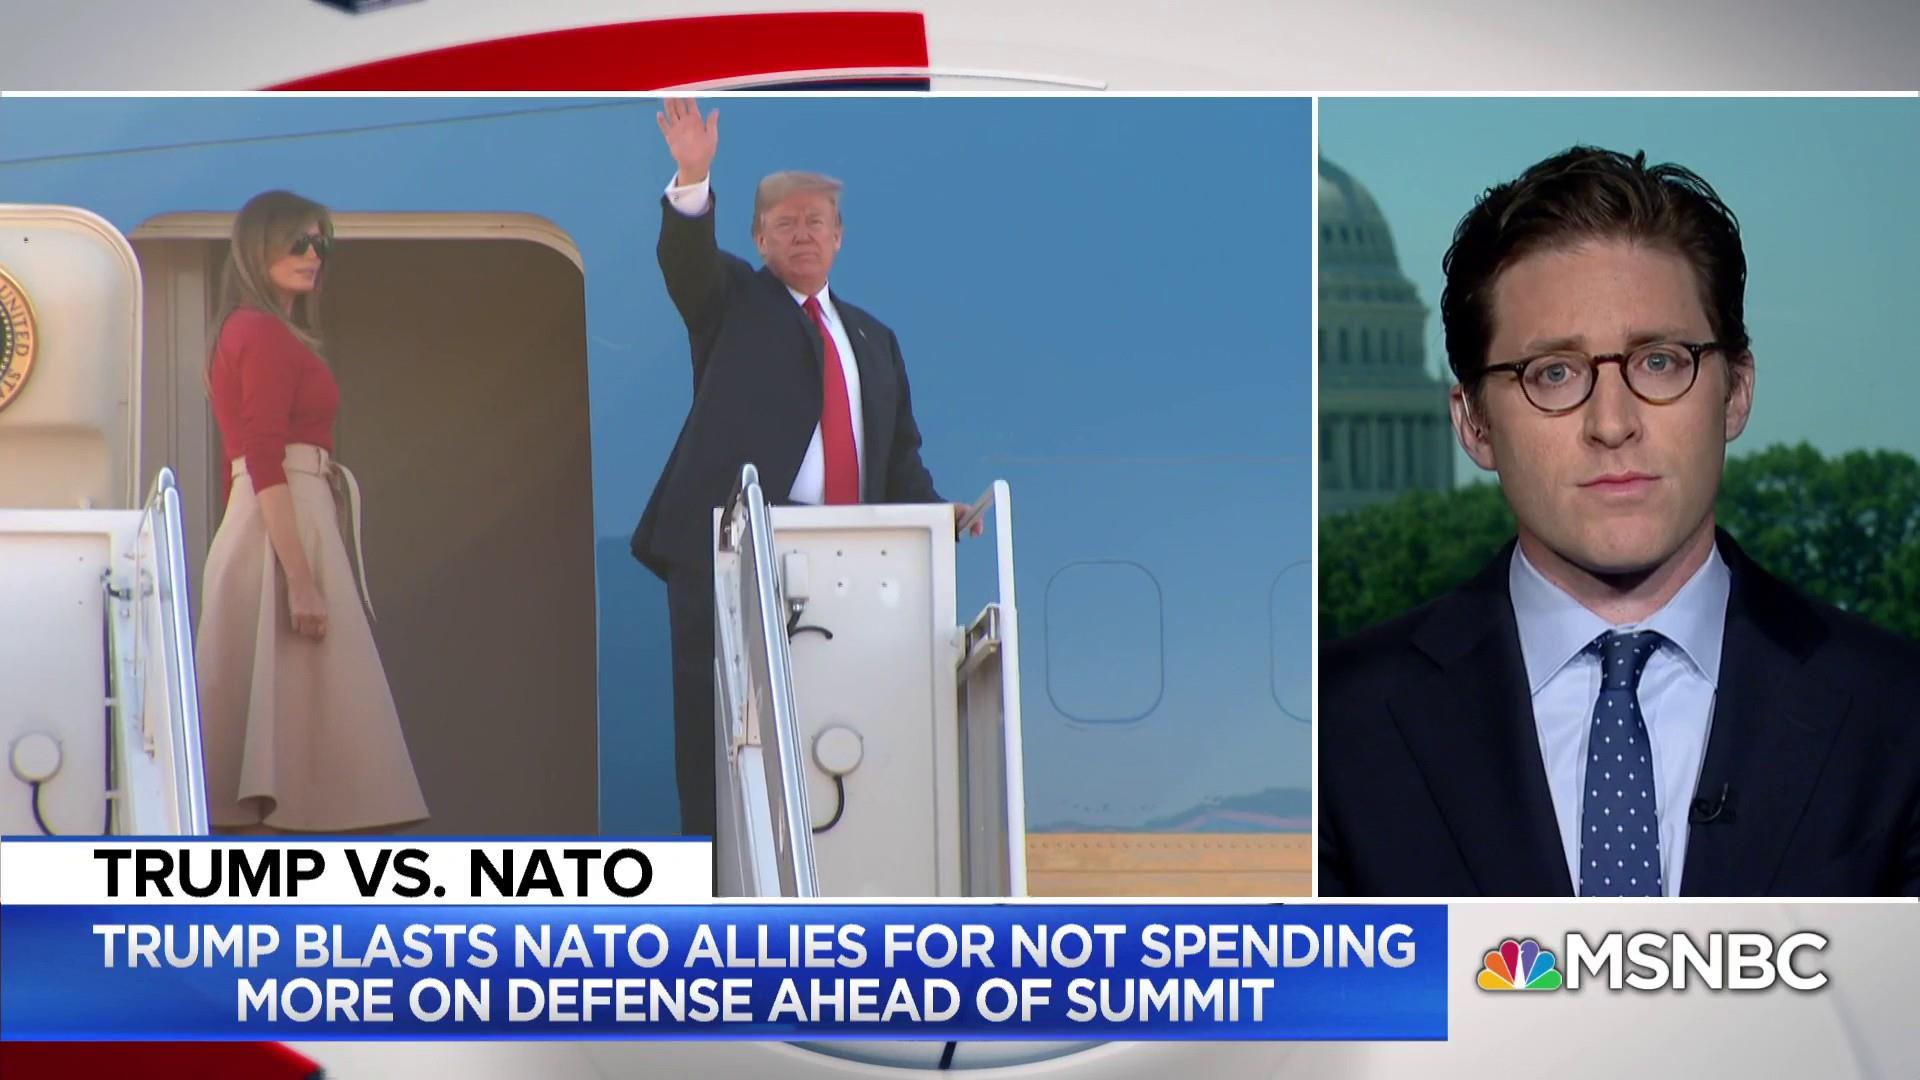 President Trump heads to NATO Summit after attacking allies